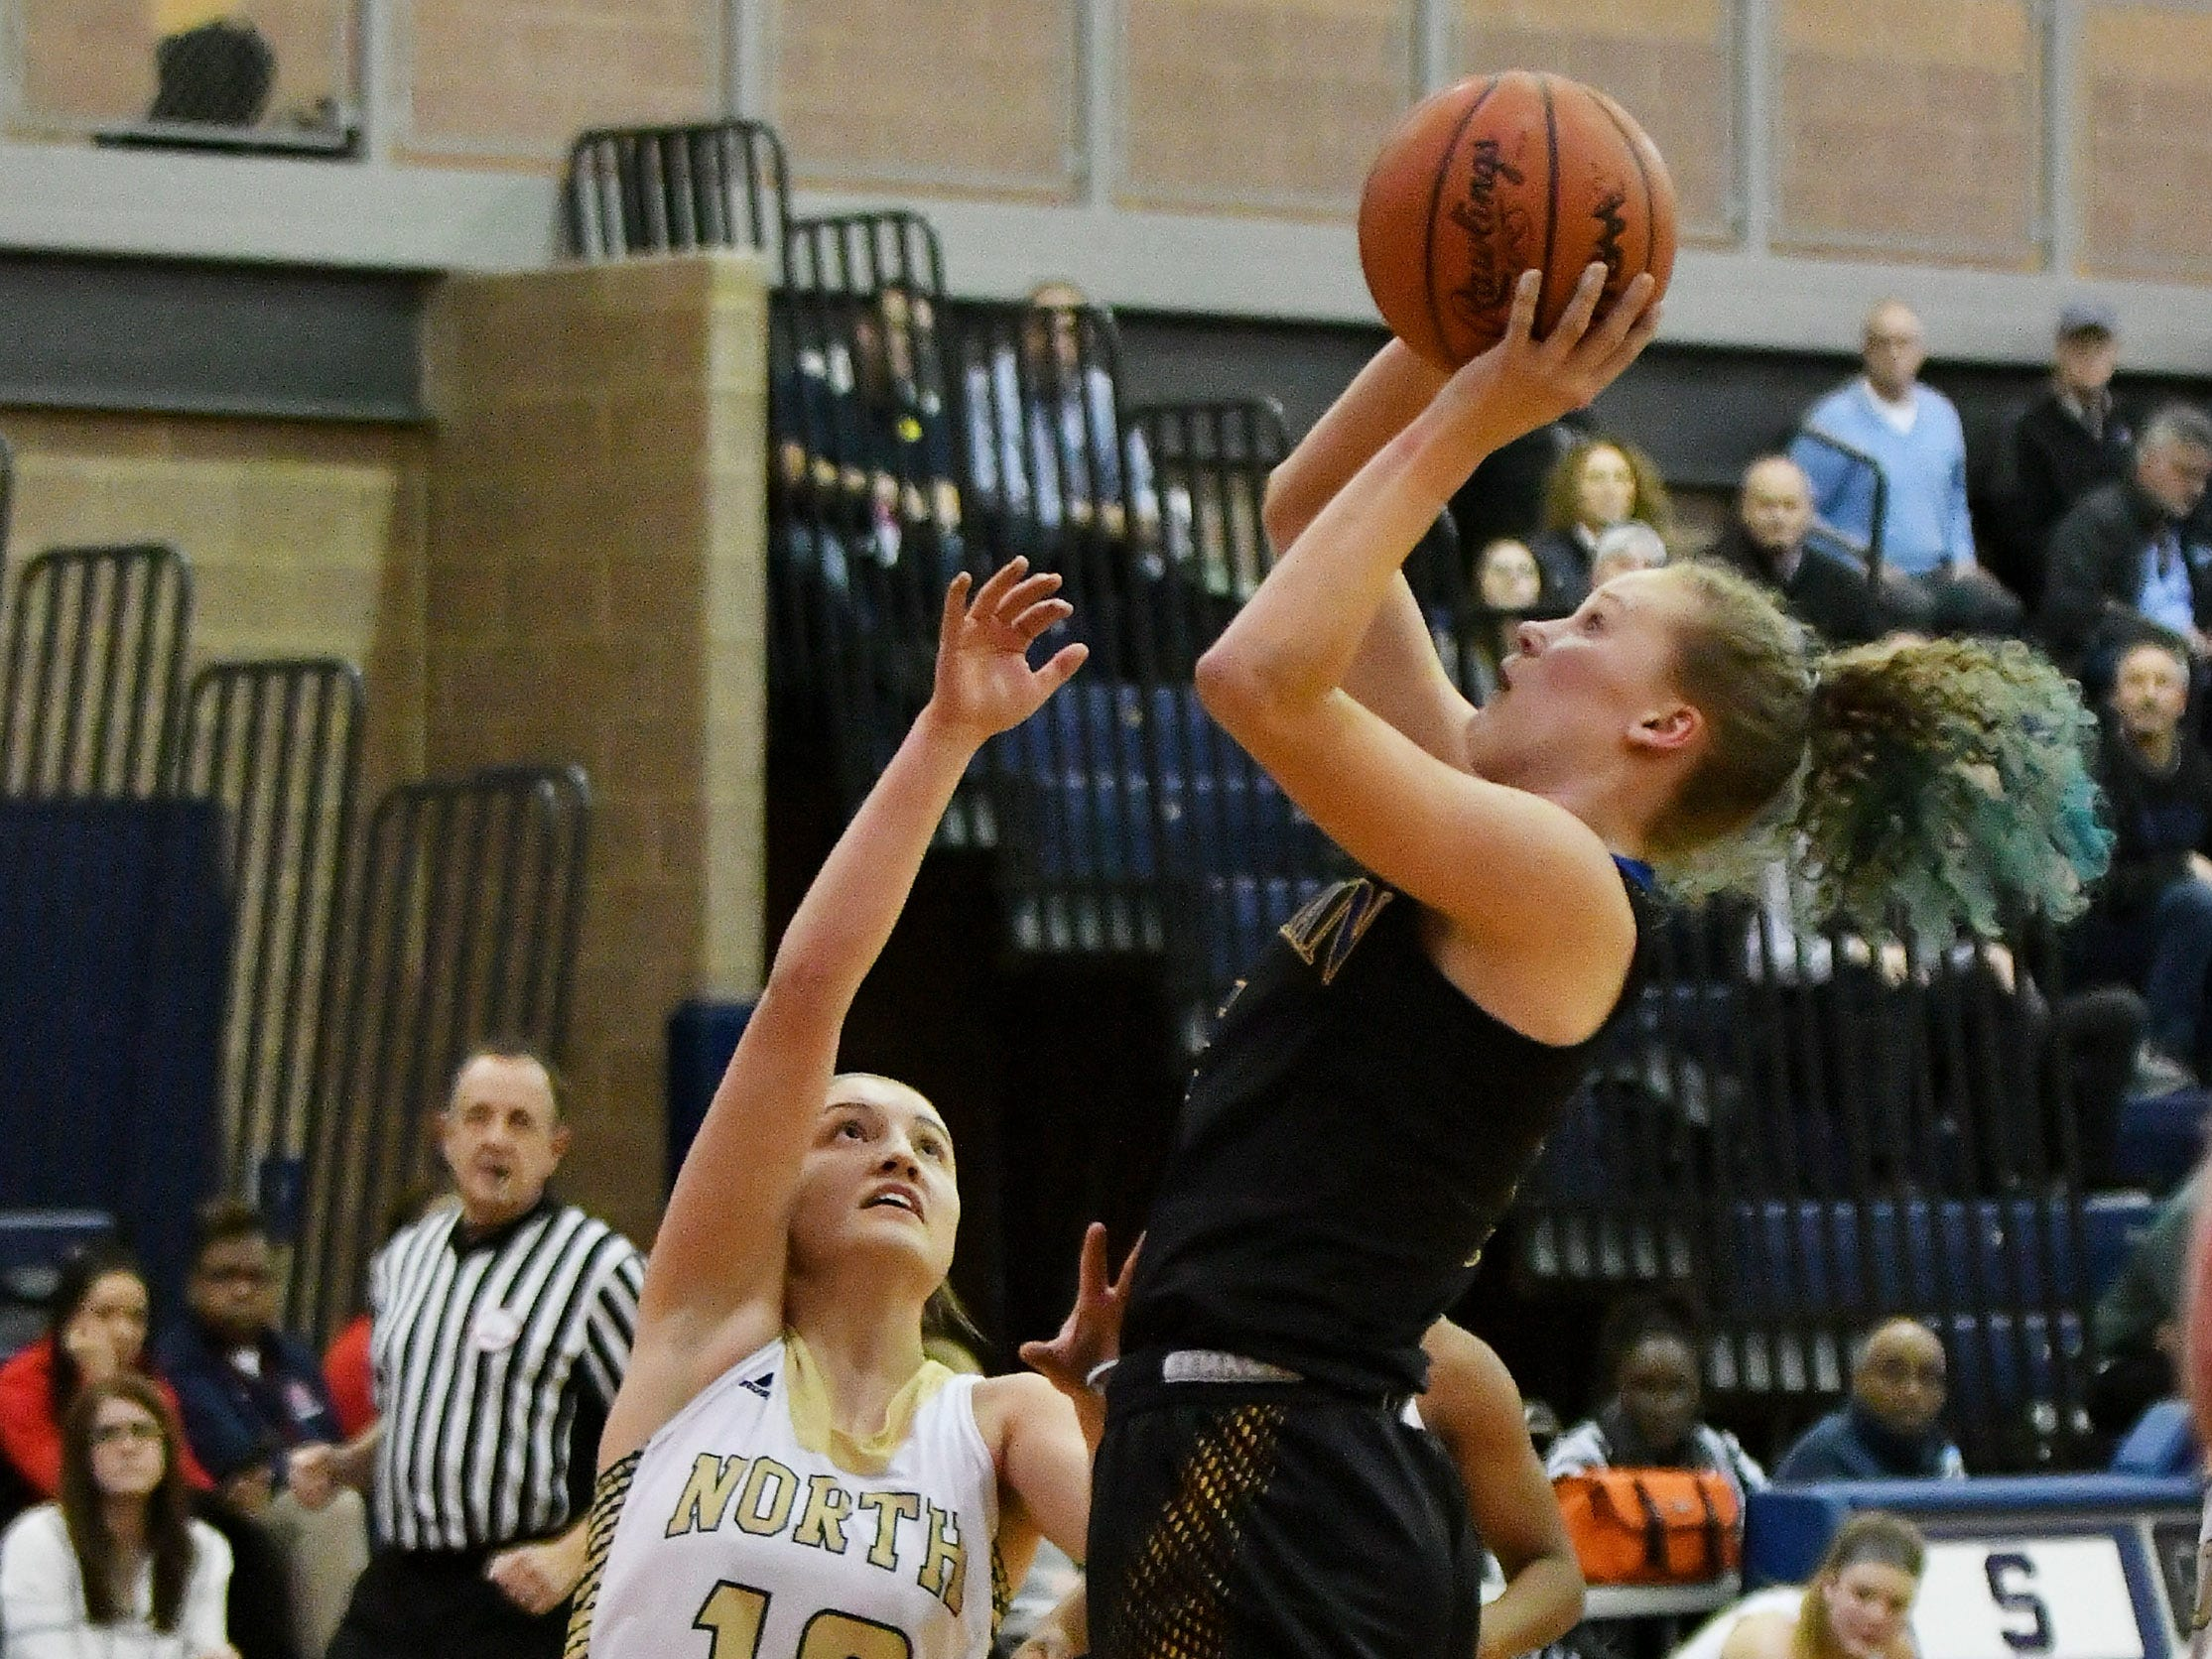 Grosse Pointe North's Evelyn Zacharias (10) defends a shot by Marian's Megan Kraus in the first half.